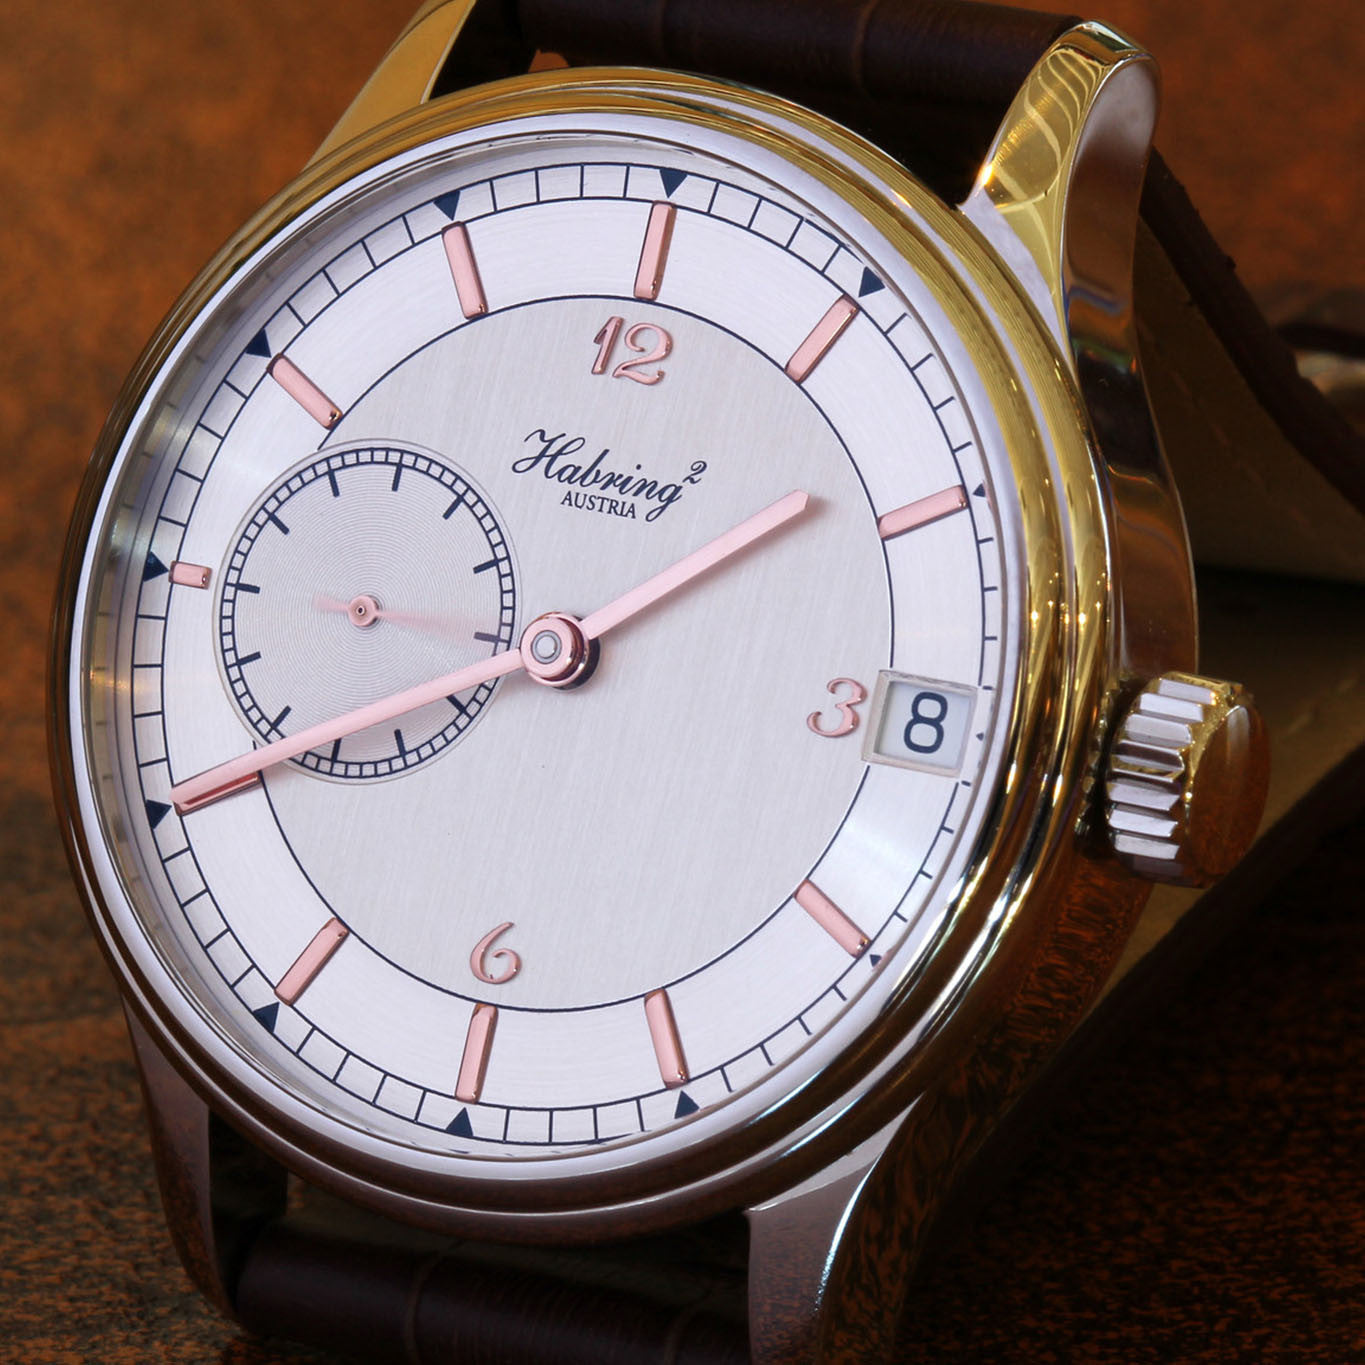 HABRING² SS Time Date watch